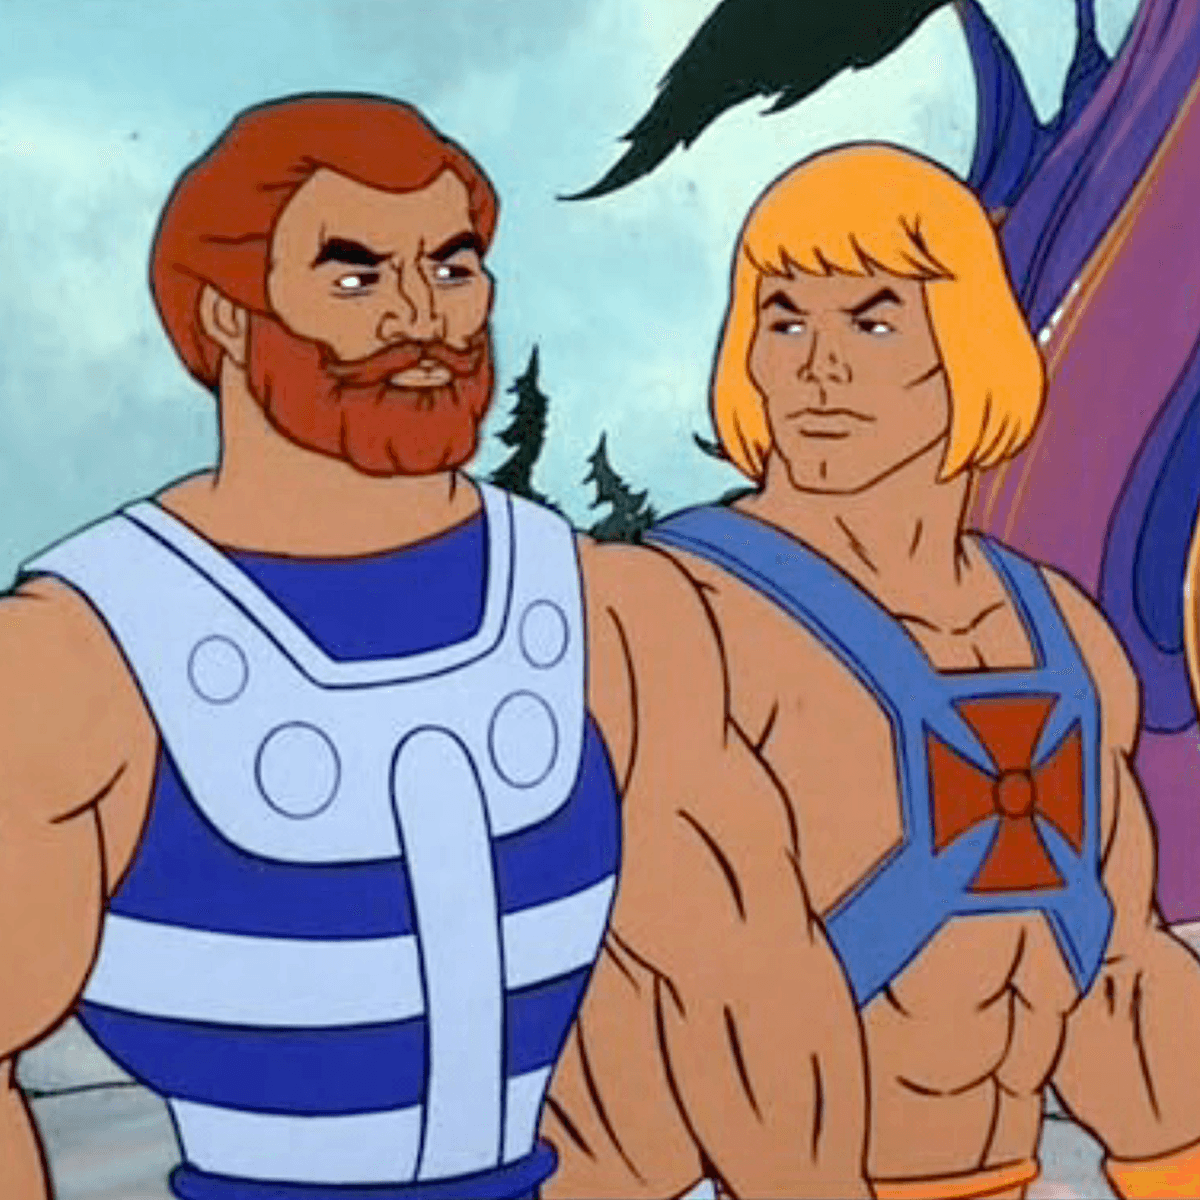 HE MAN 15 Facts About 80s Cartoons That Will Ruin Your Childhood